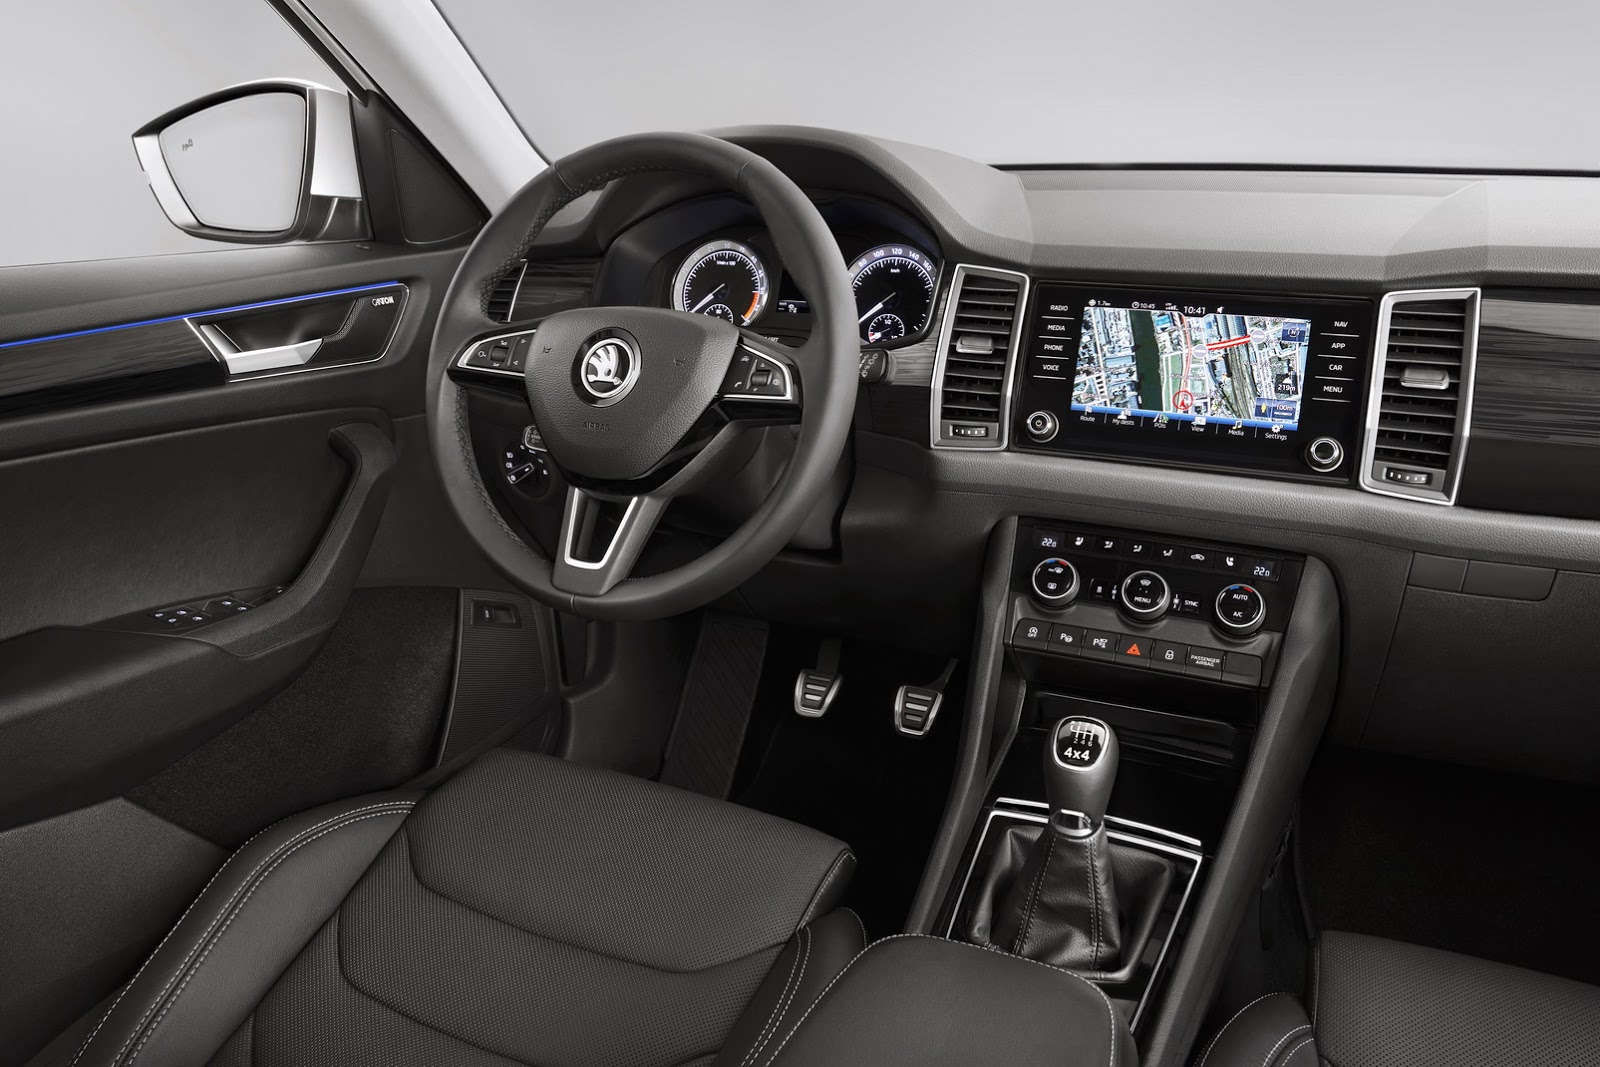 2017 Skoda Kodiaq Interior Design Revealed Ahead of ...